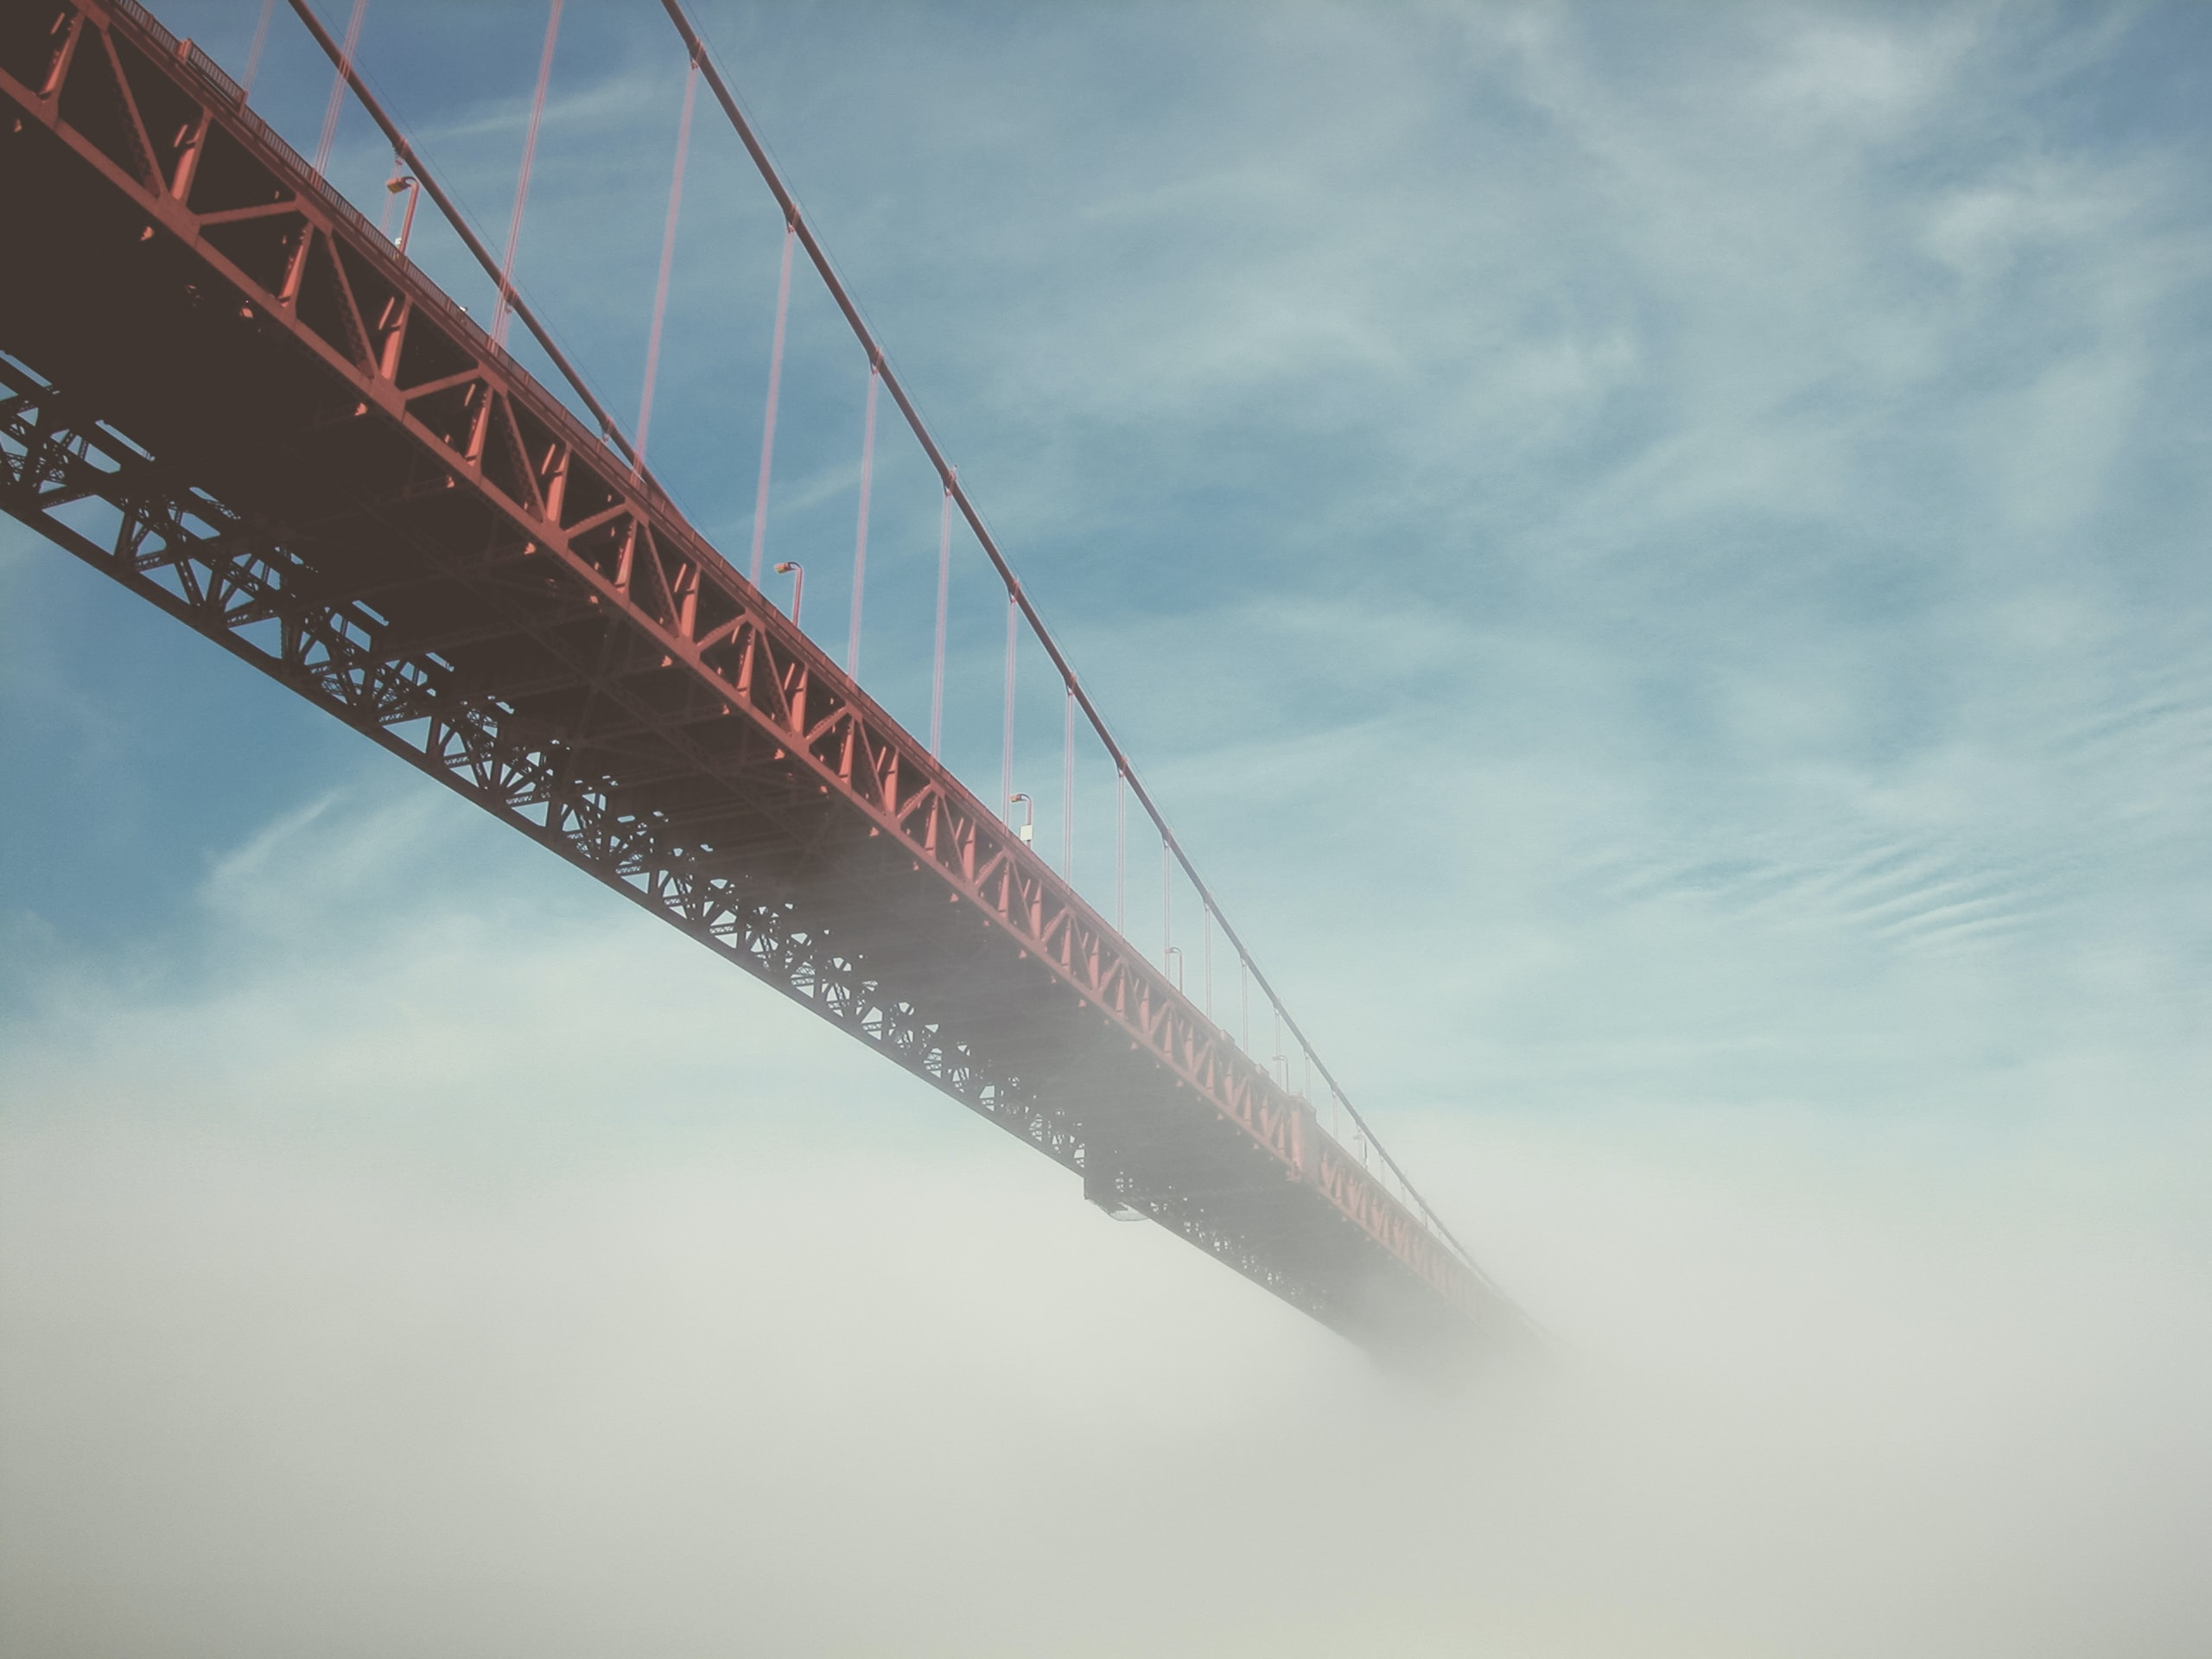 Golden Gate Bridge disappears into the cloudy fog